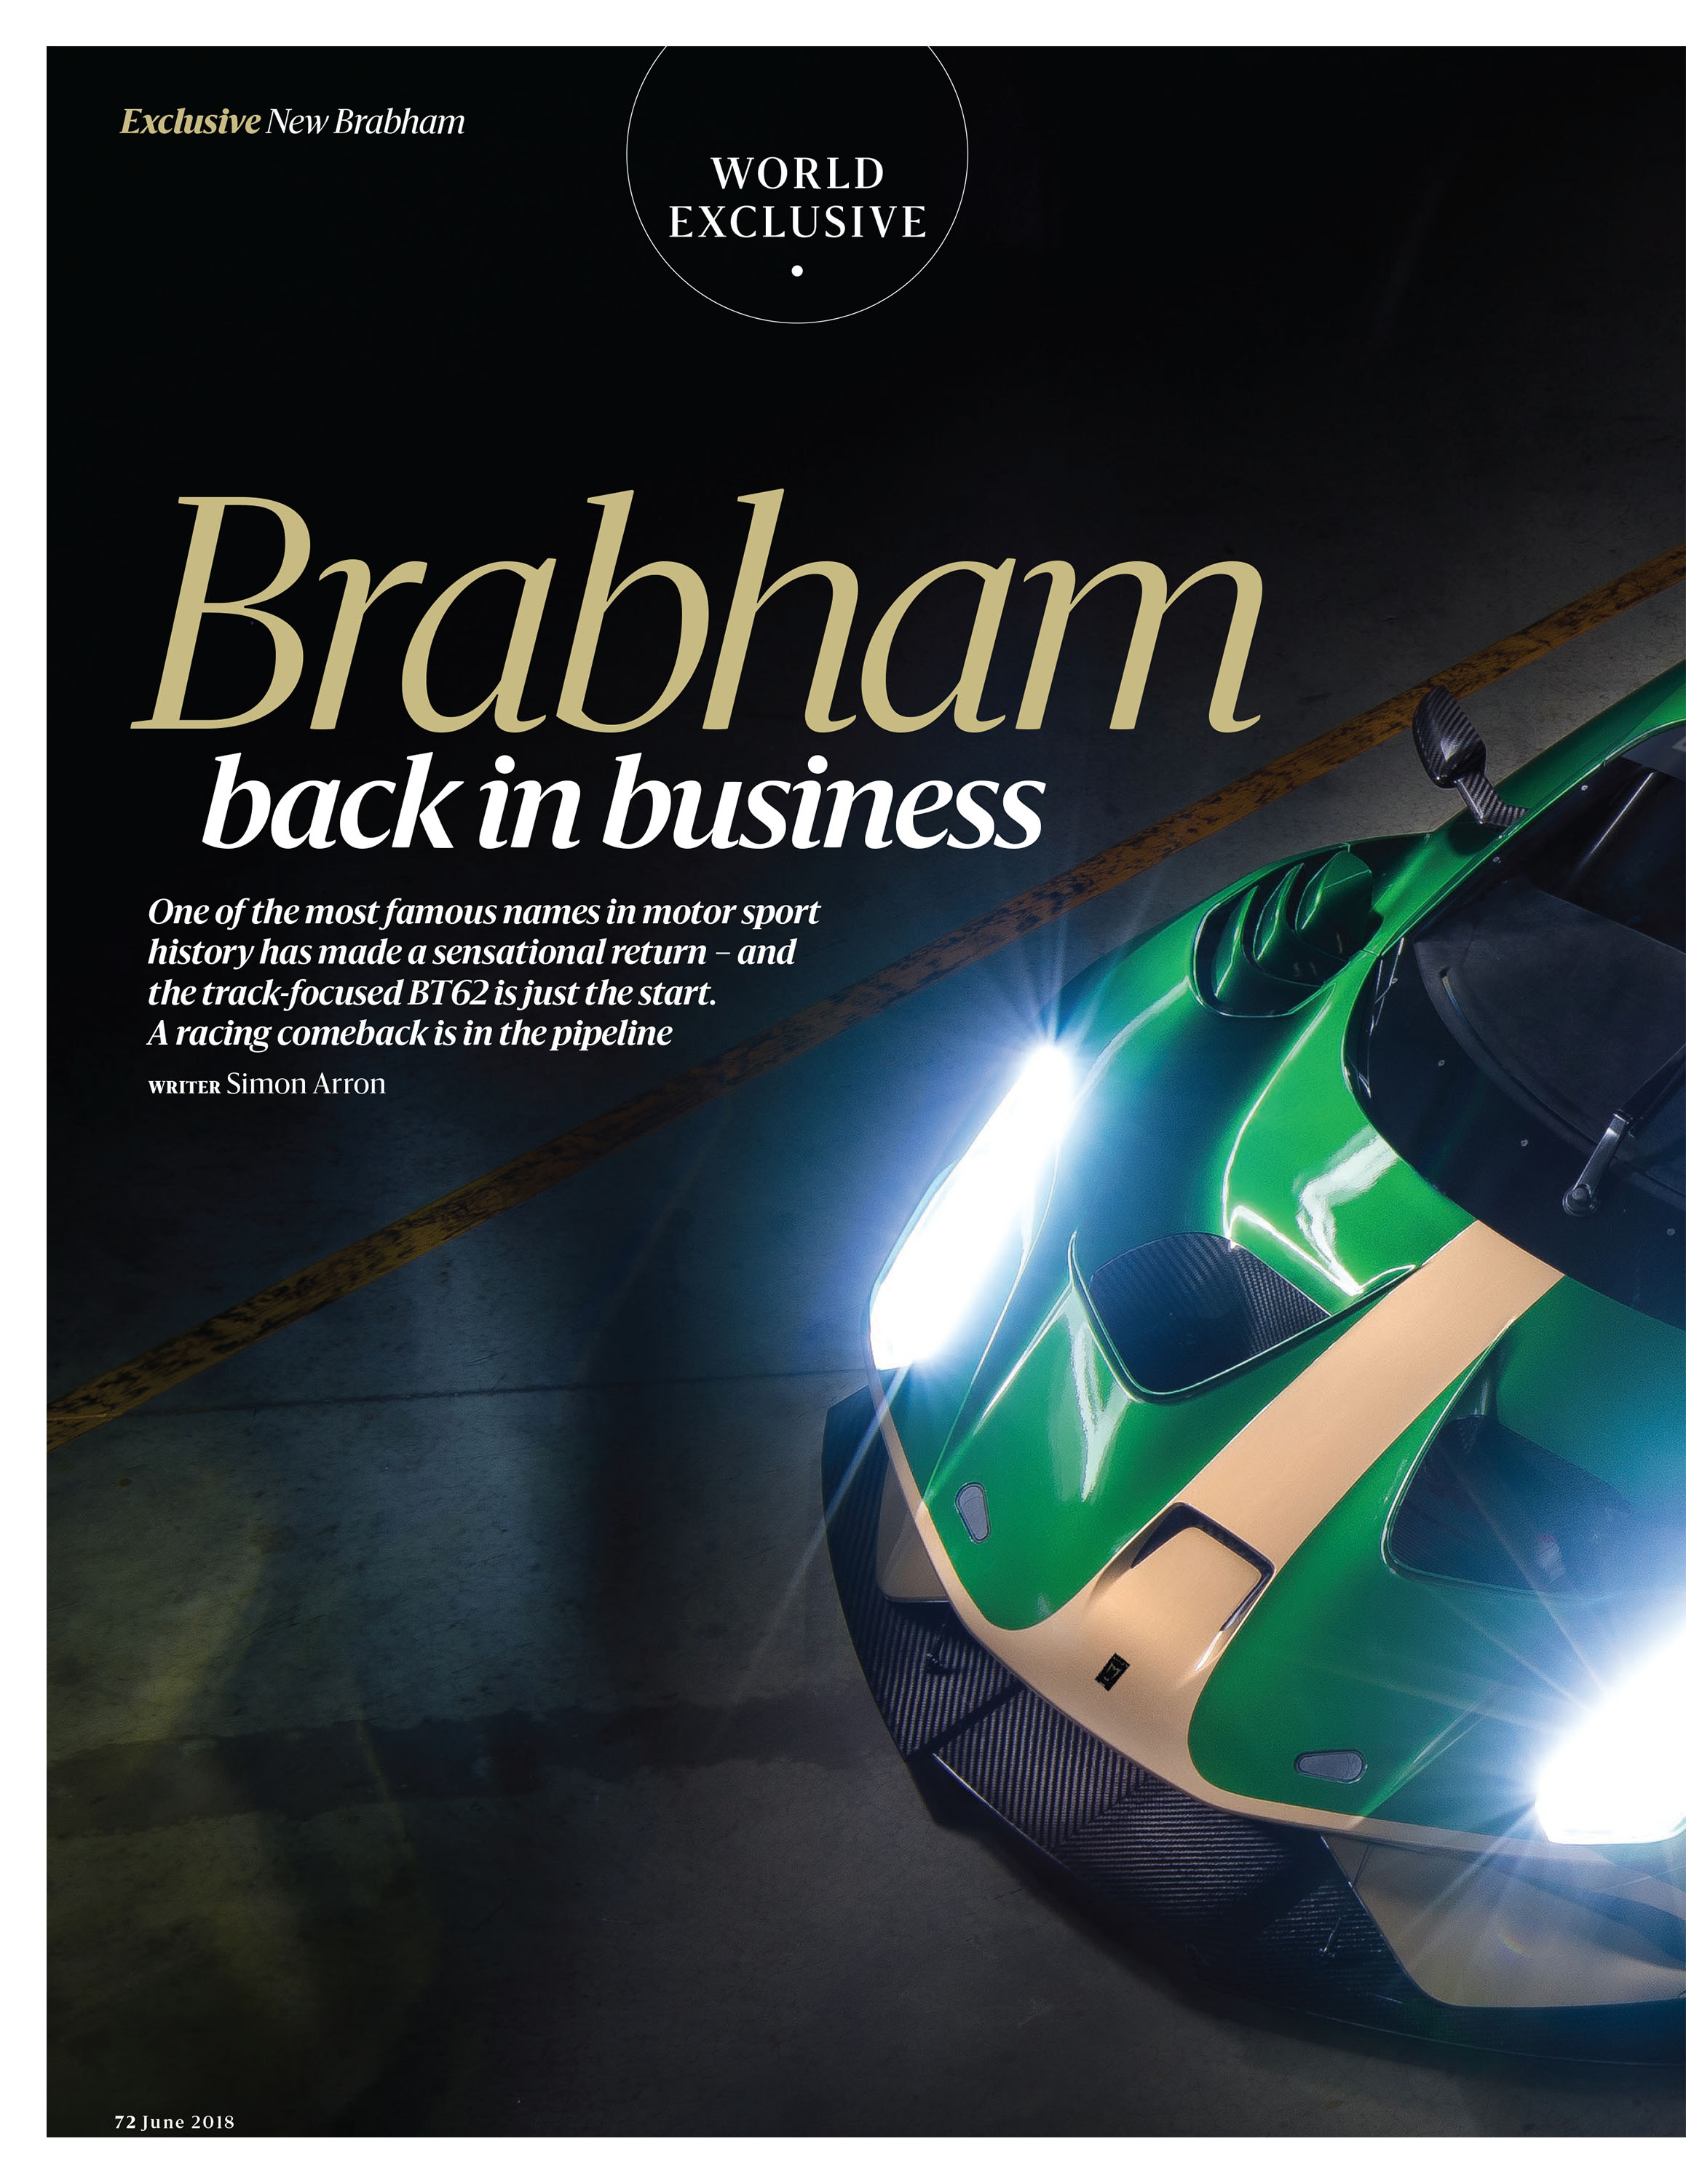 Brabham back in business image